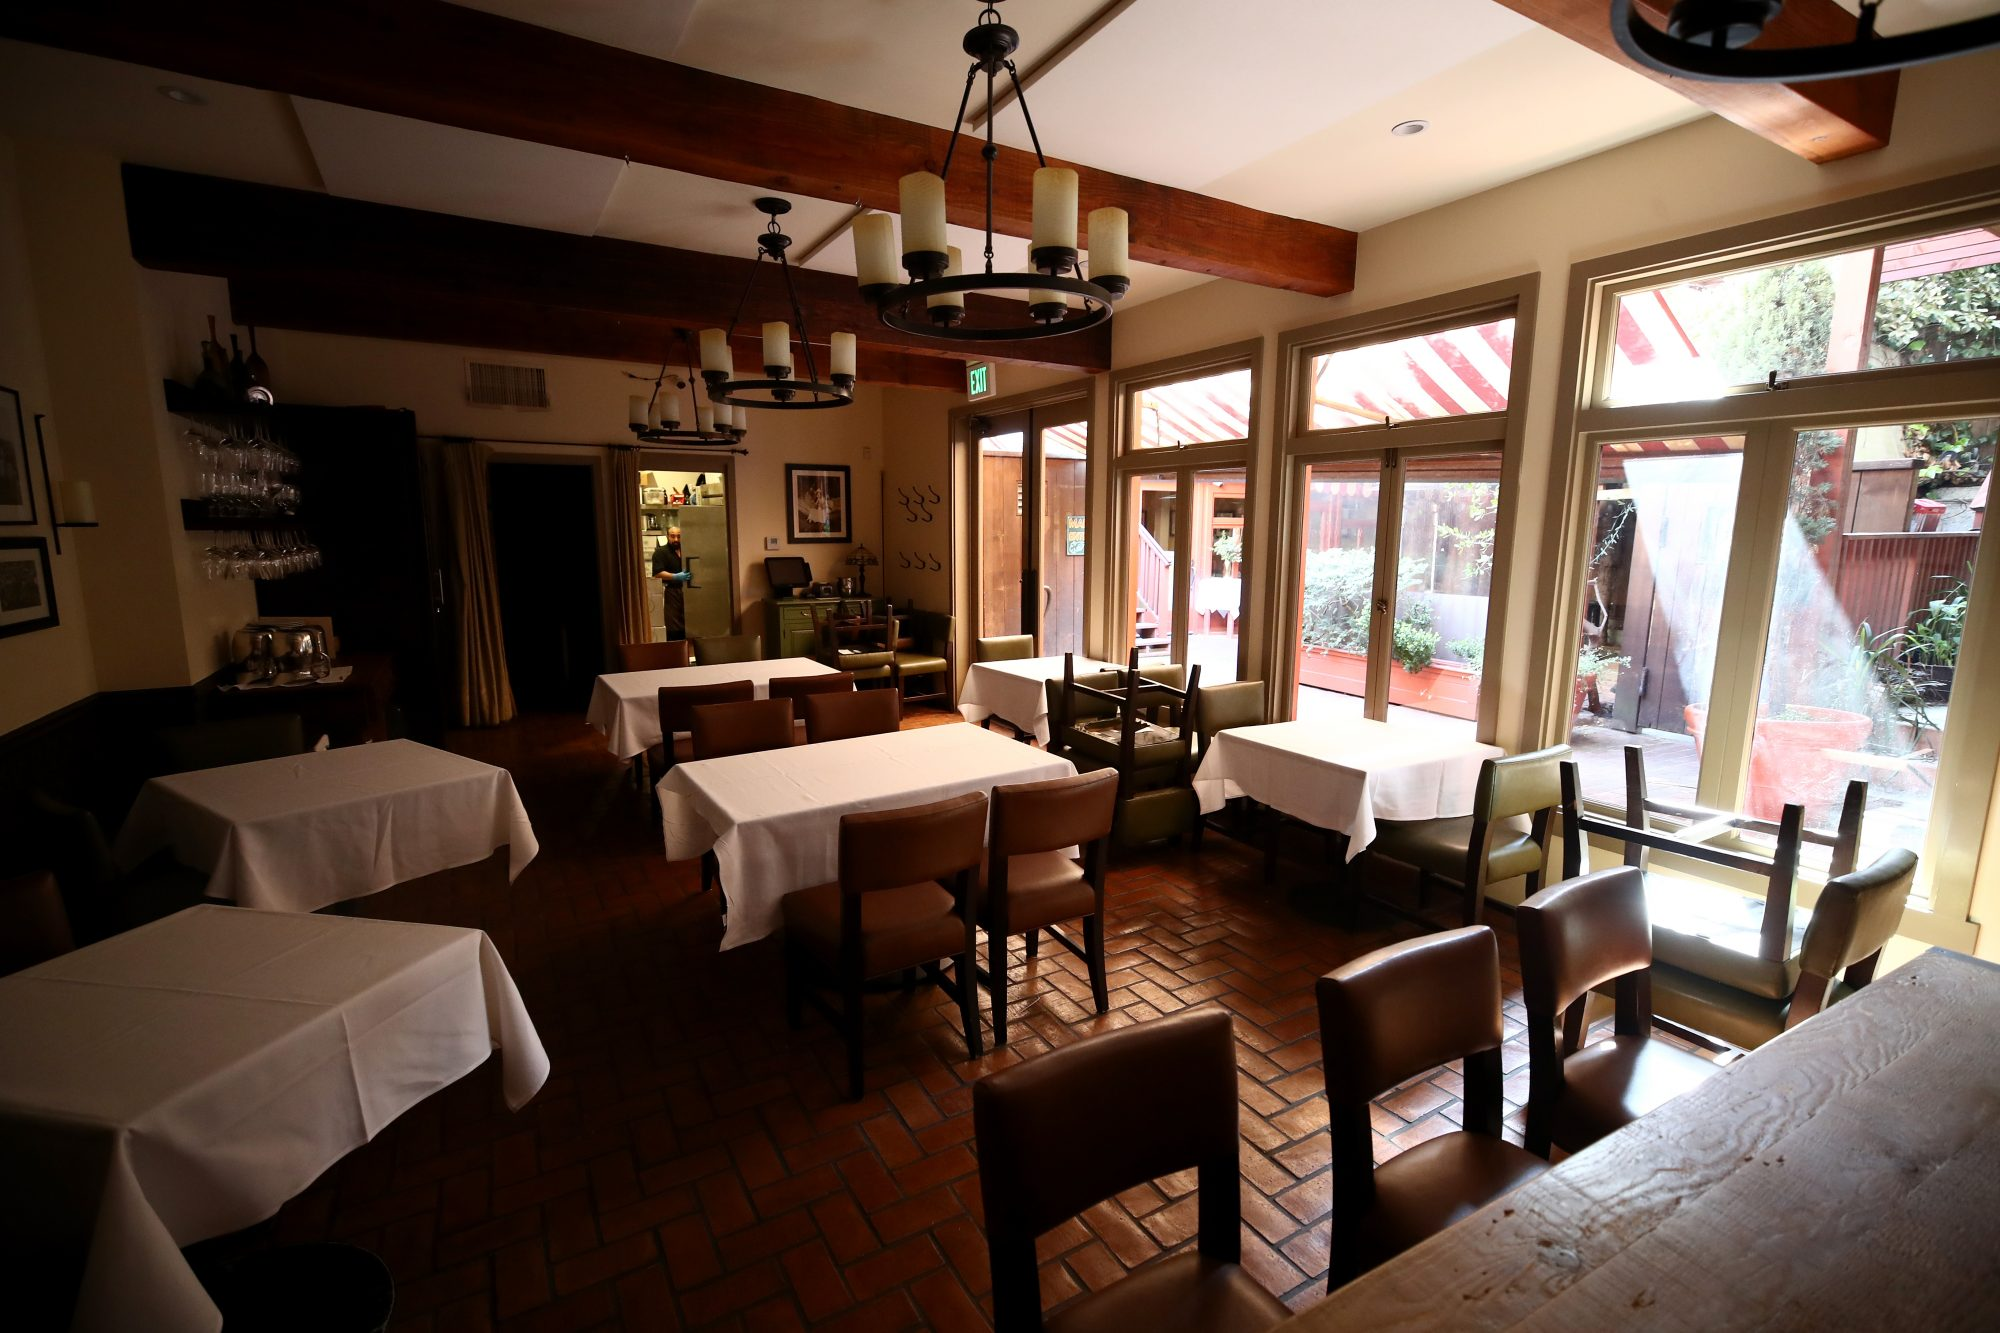 Upscale San Francisco Restaurant Offers Curbside Pickup During Coronavirus Shutdown